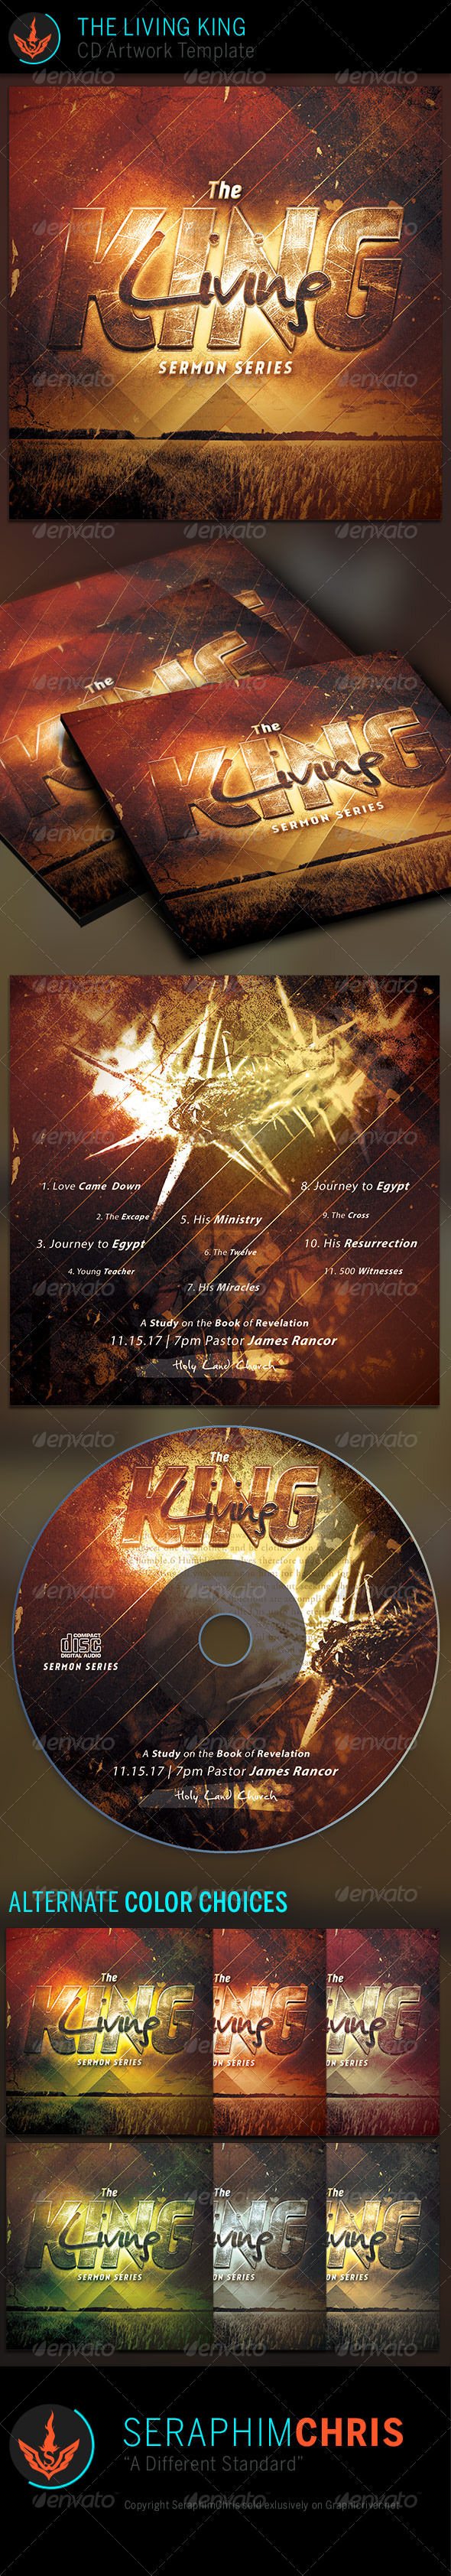 GraphicRiver The Living King CD Artwork Template 7384783